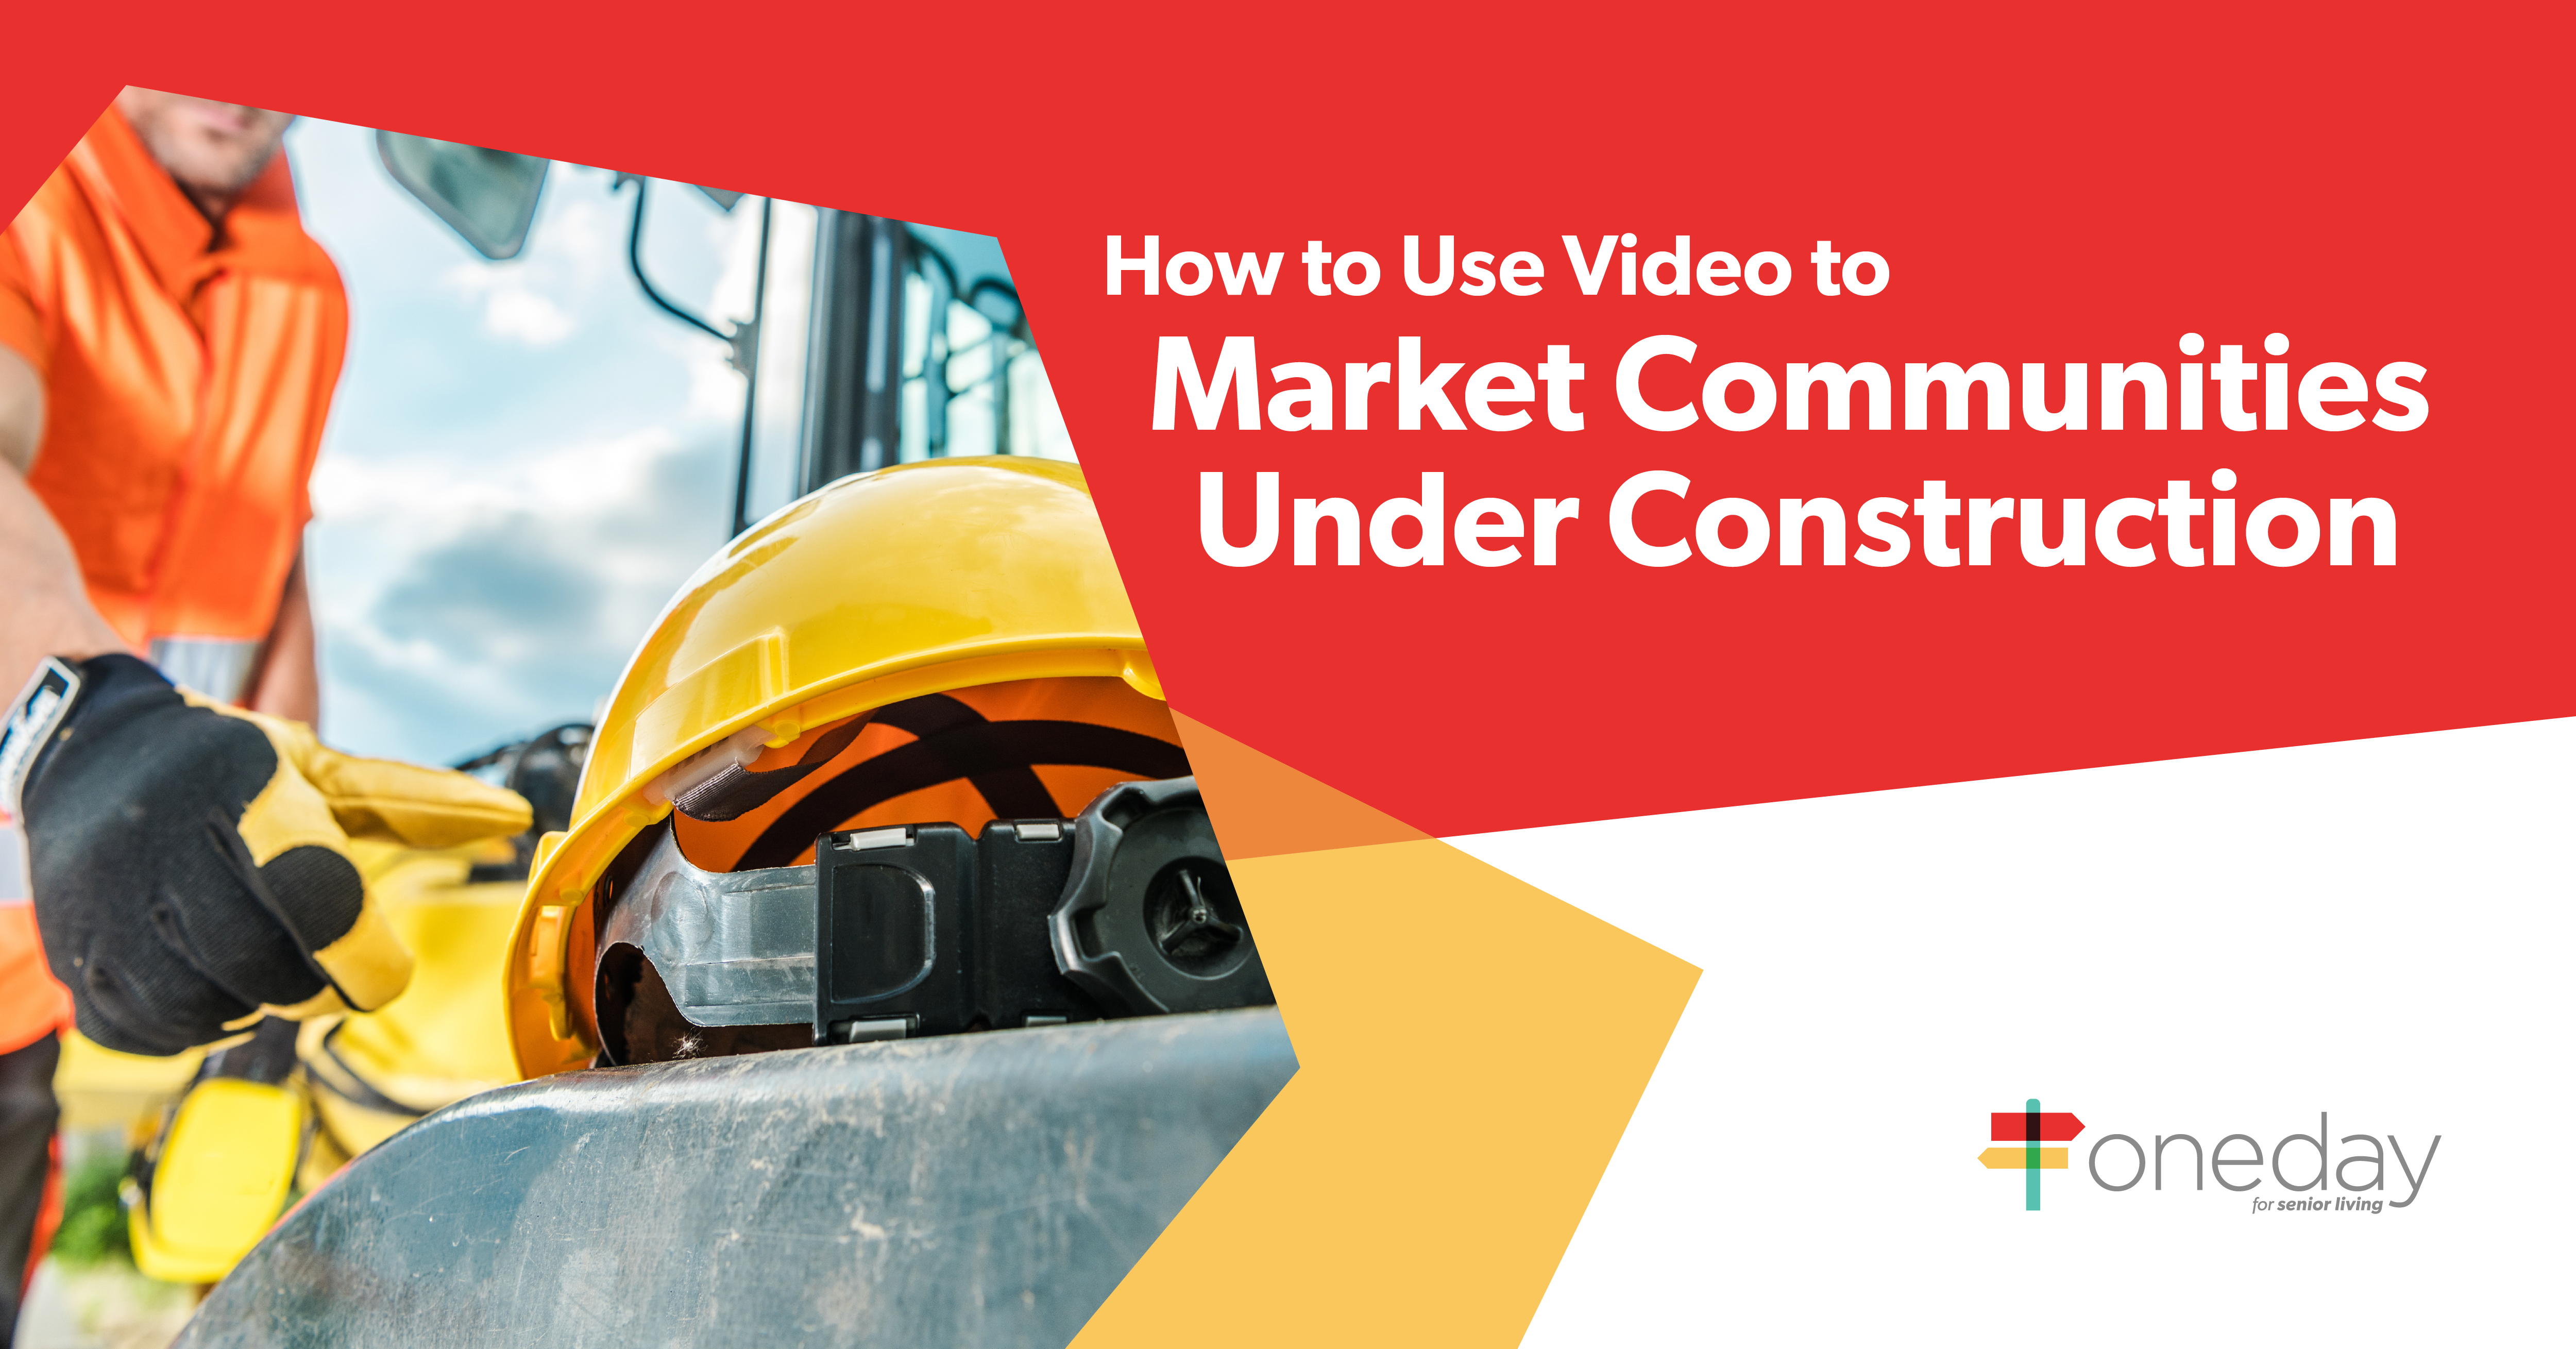 Video content is an especially powerful tool to generate excitement and anticipation from prospects while your senior living community is under construction.